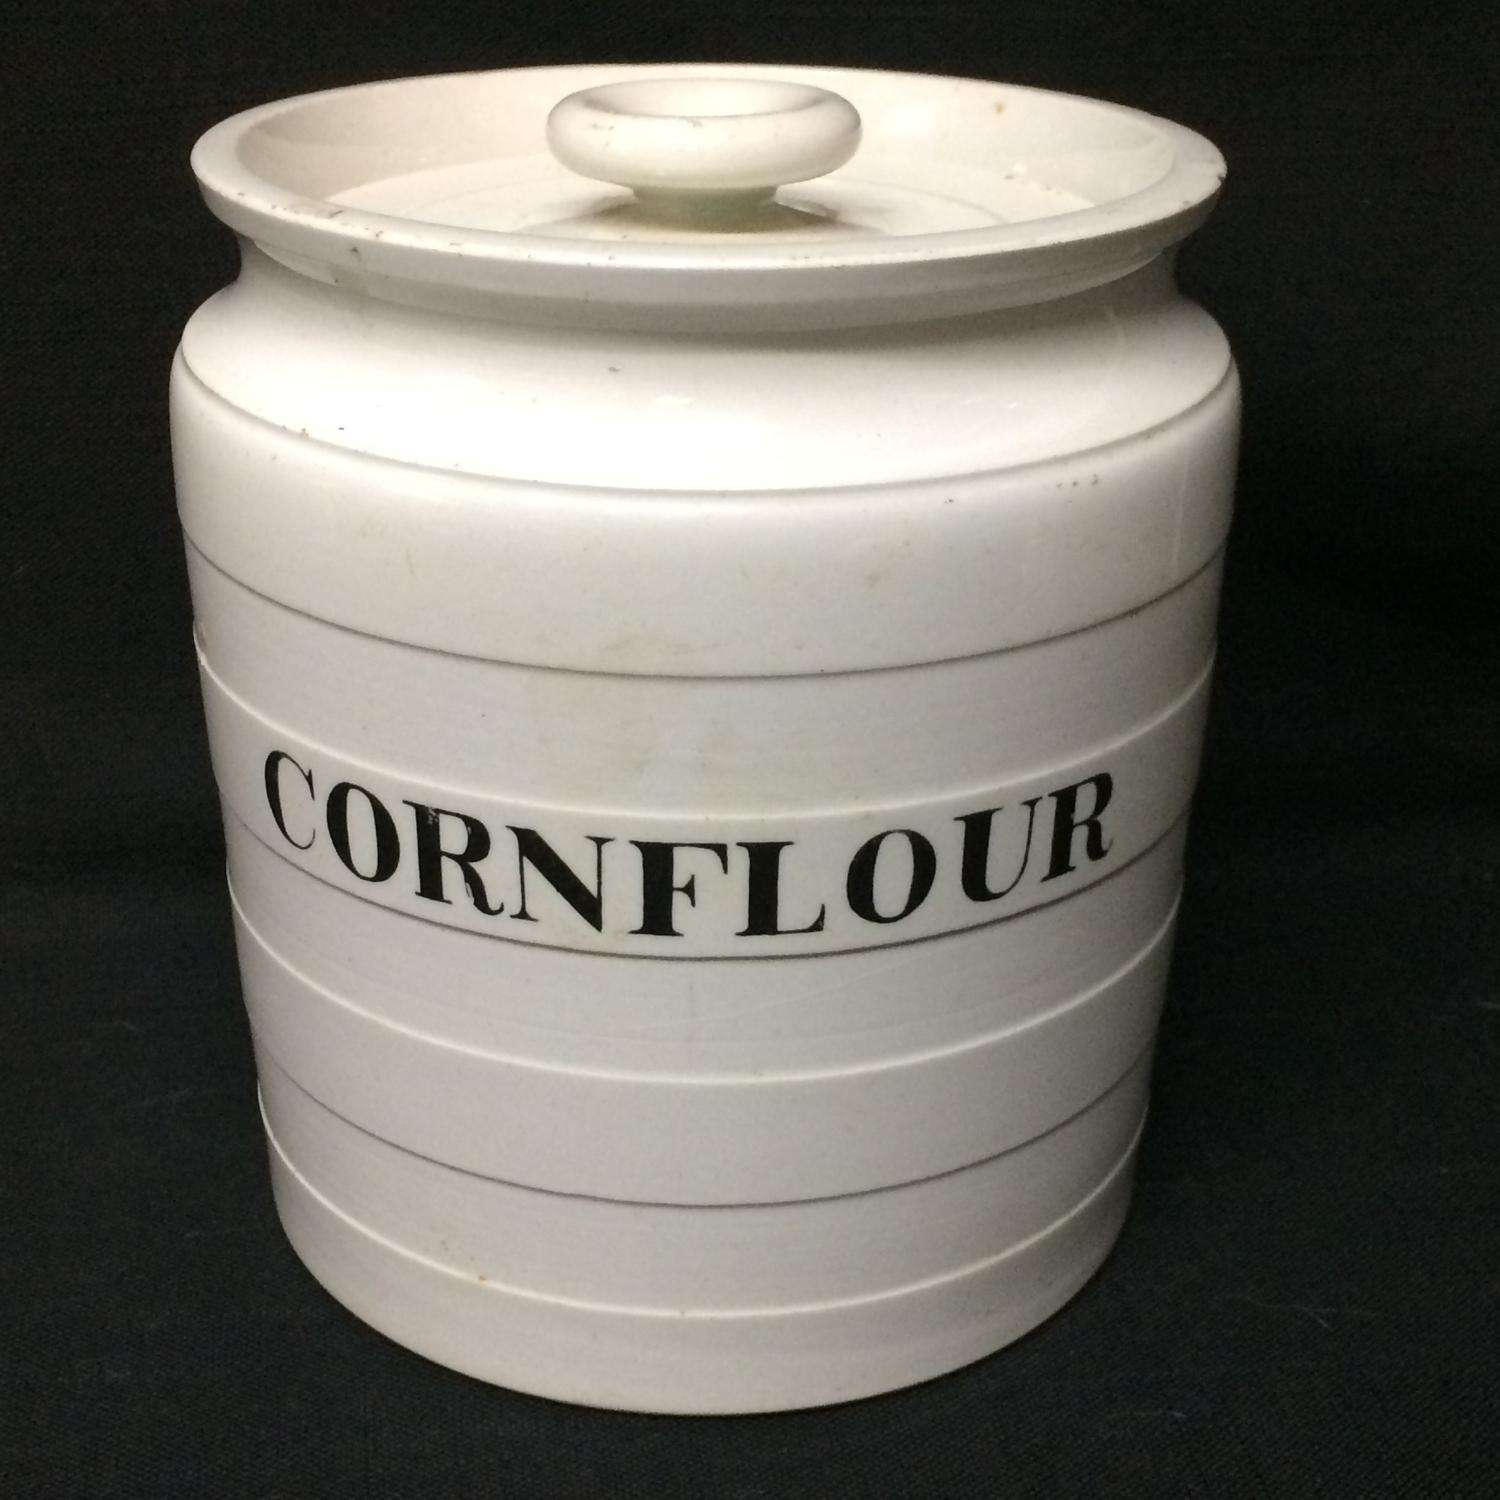 Maling Edwardian White Banded Kitchen Storage Jar ~ CornFlour ~ c 1920